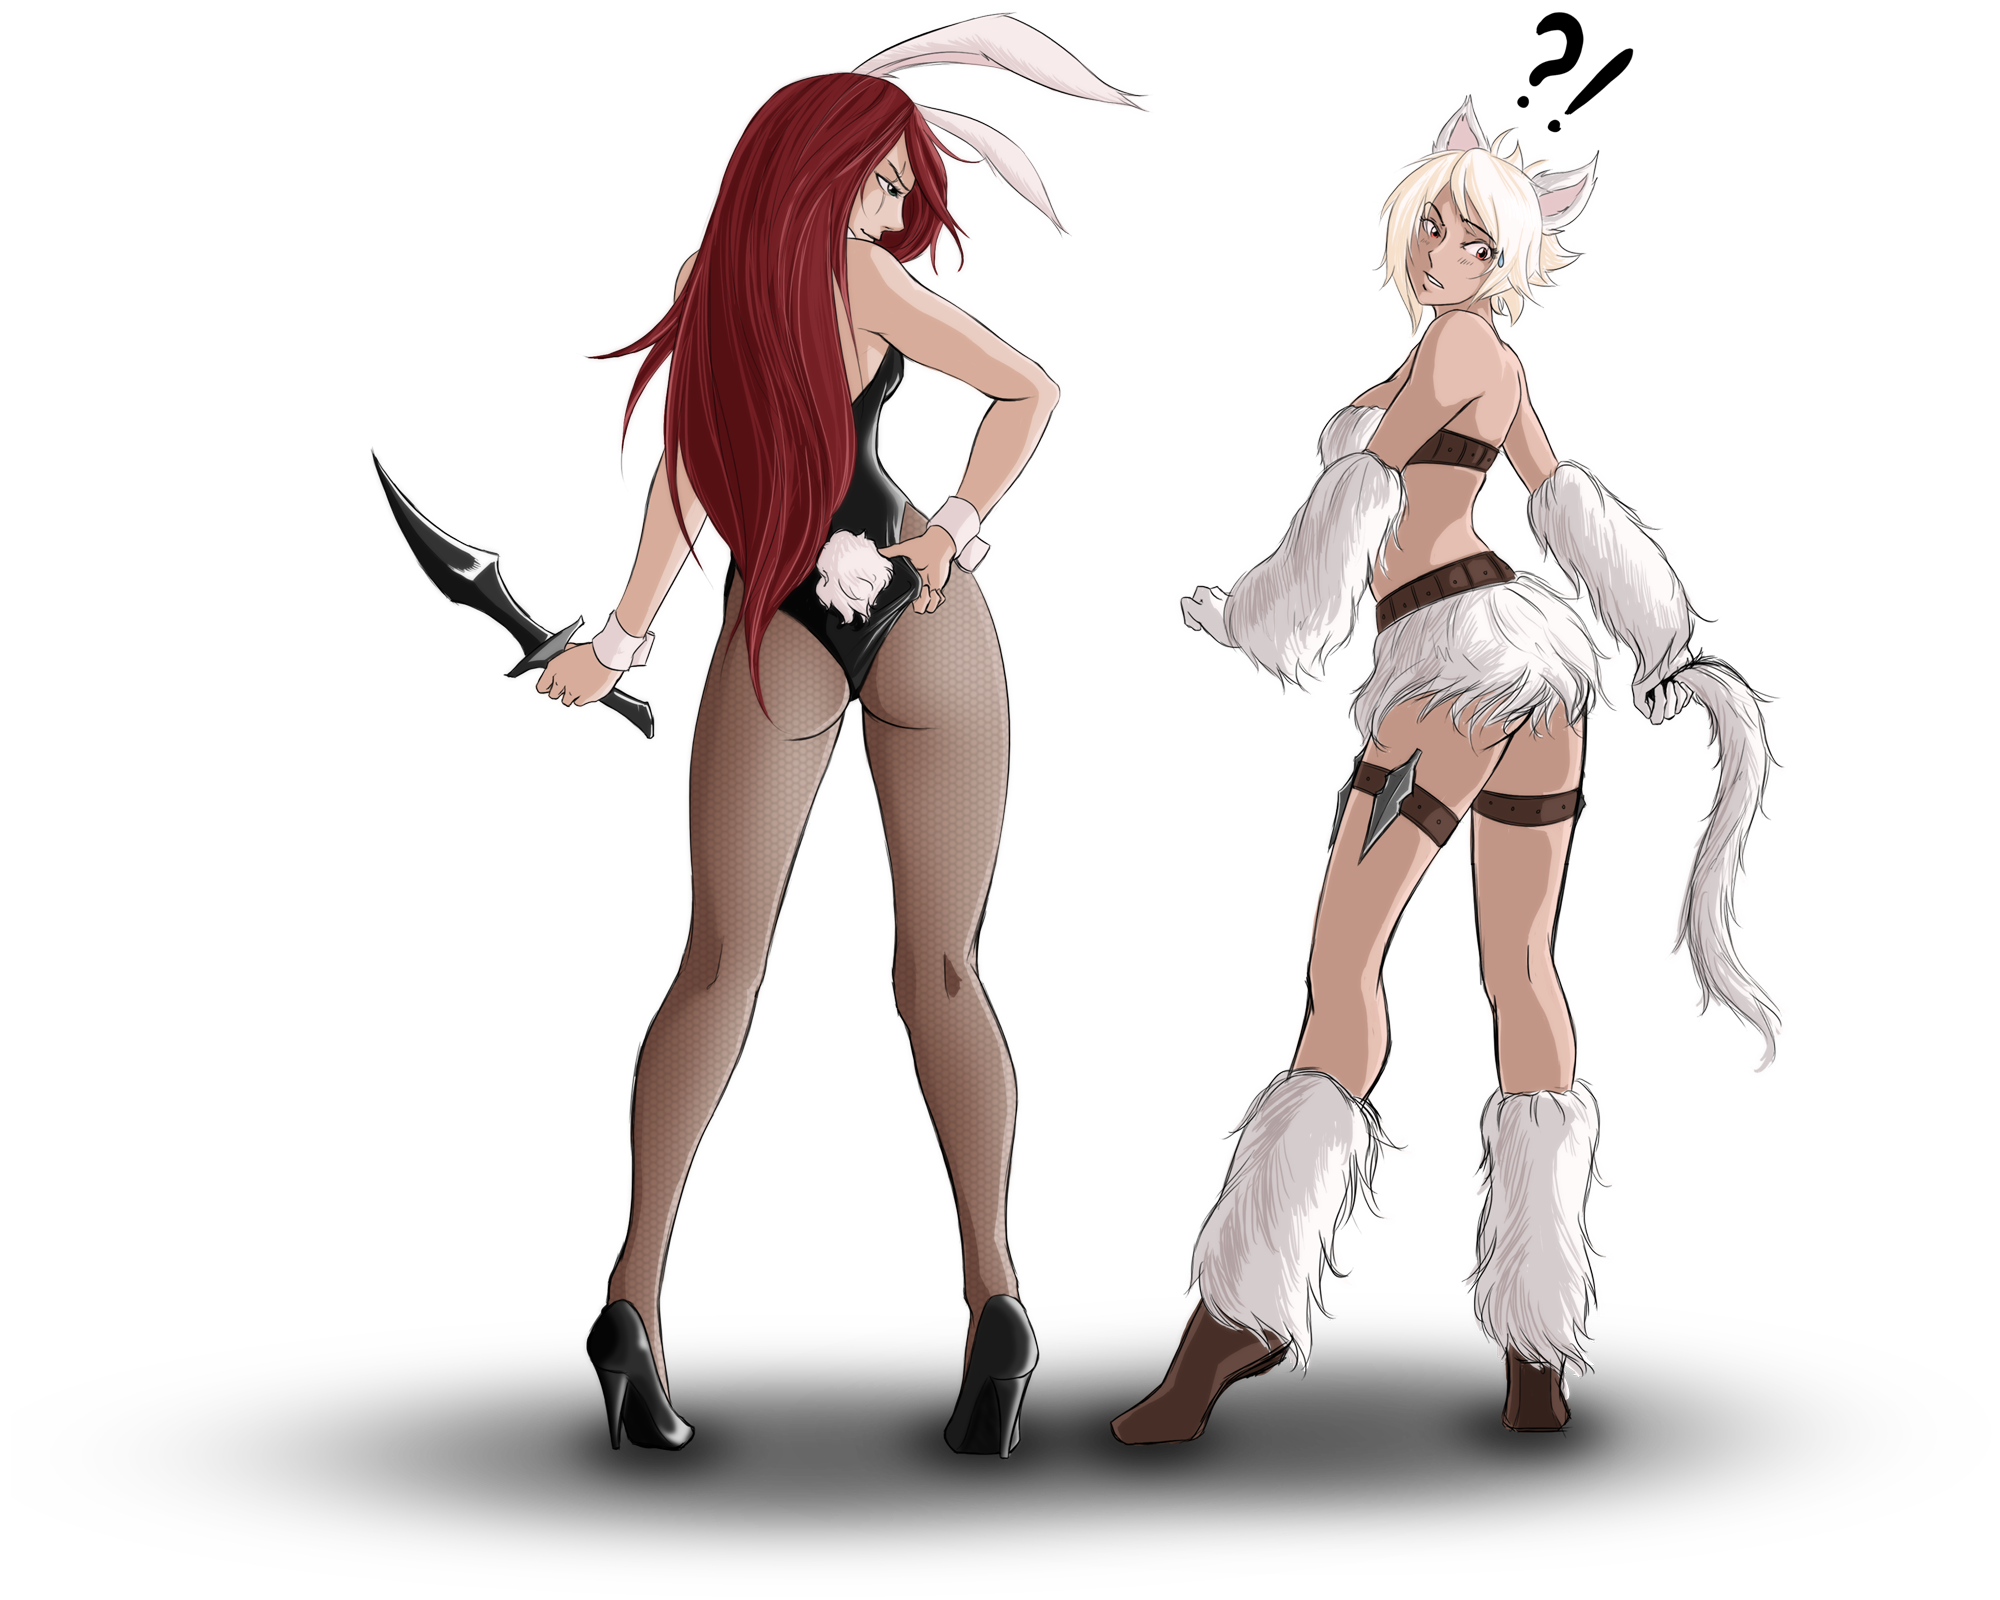 Aion skin sexy nude clips